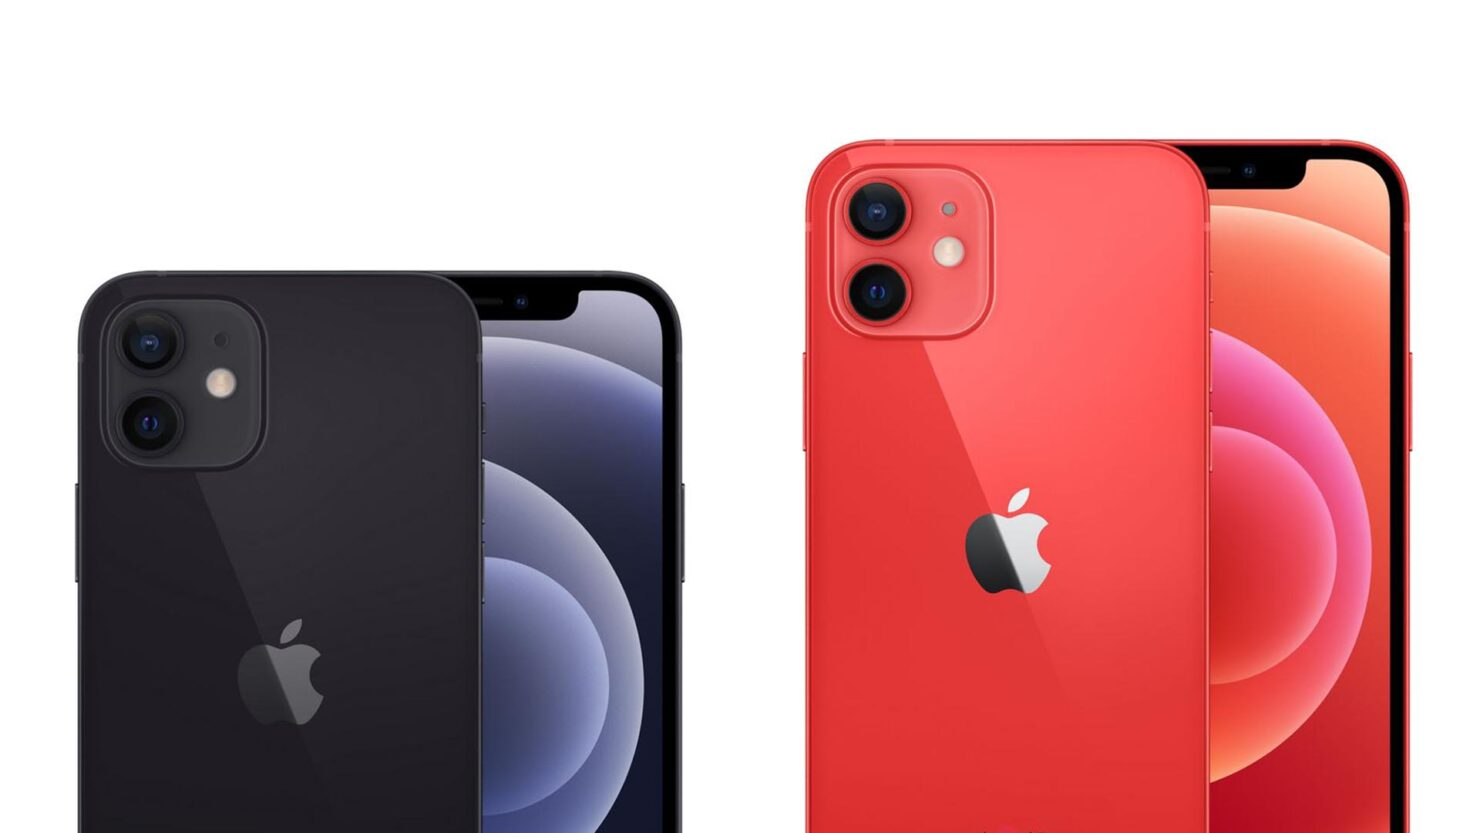 iPhone 12, iPhone 12 mini officially announced